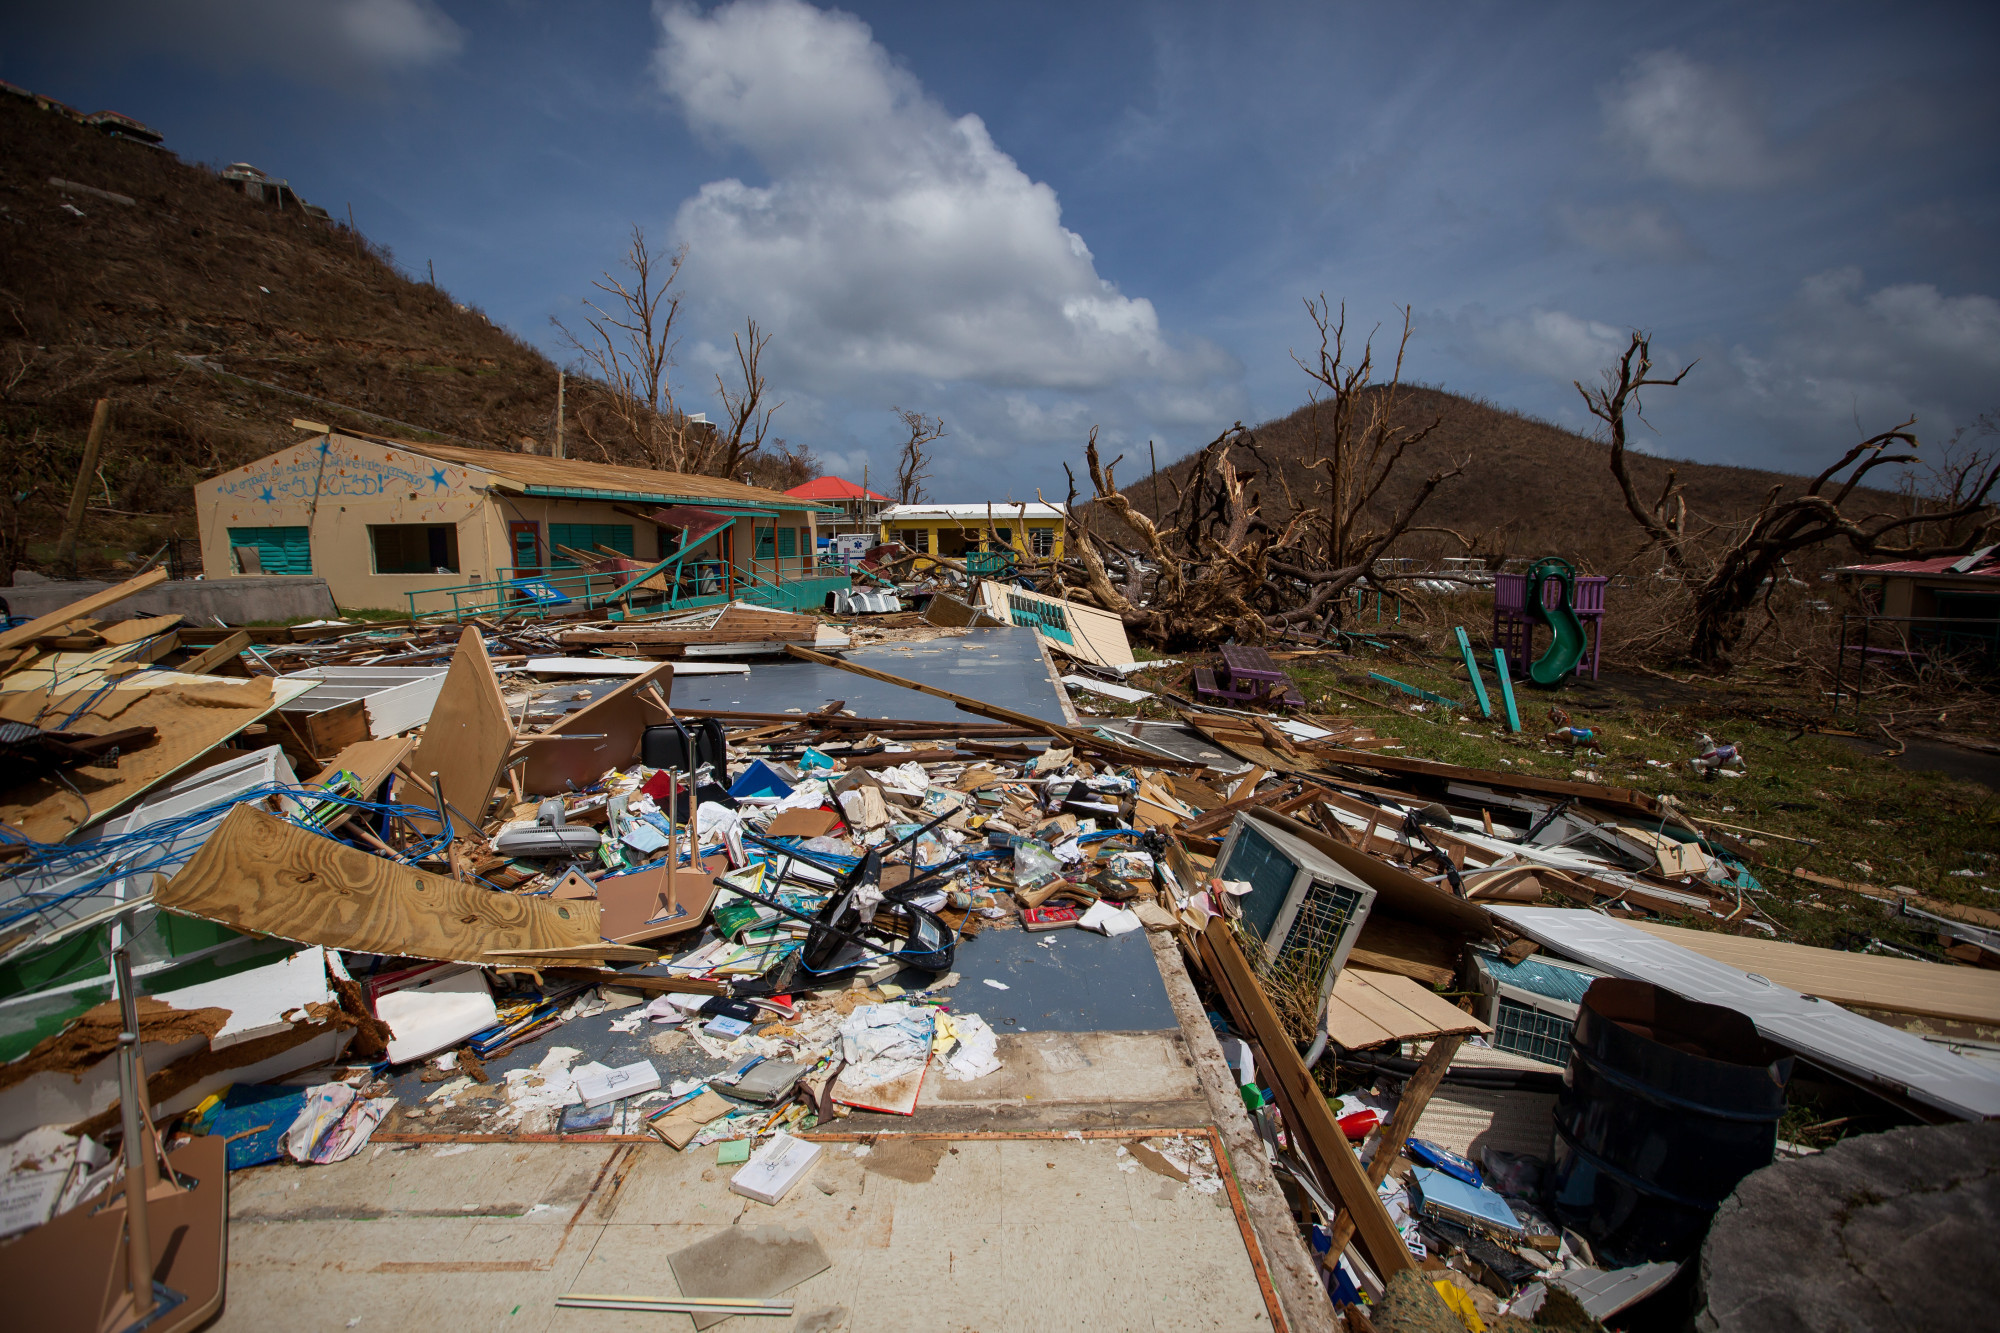 Debris sits in front of a damaged school after Hurricane Irma at Coral Bay in St John, U.S. Virgin Islands. Photographer: Michael Nagle/Bloomberg